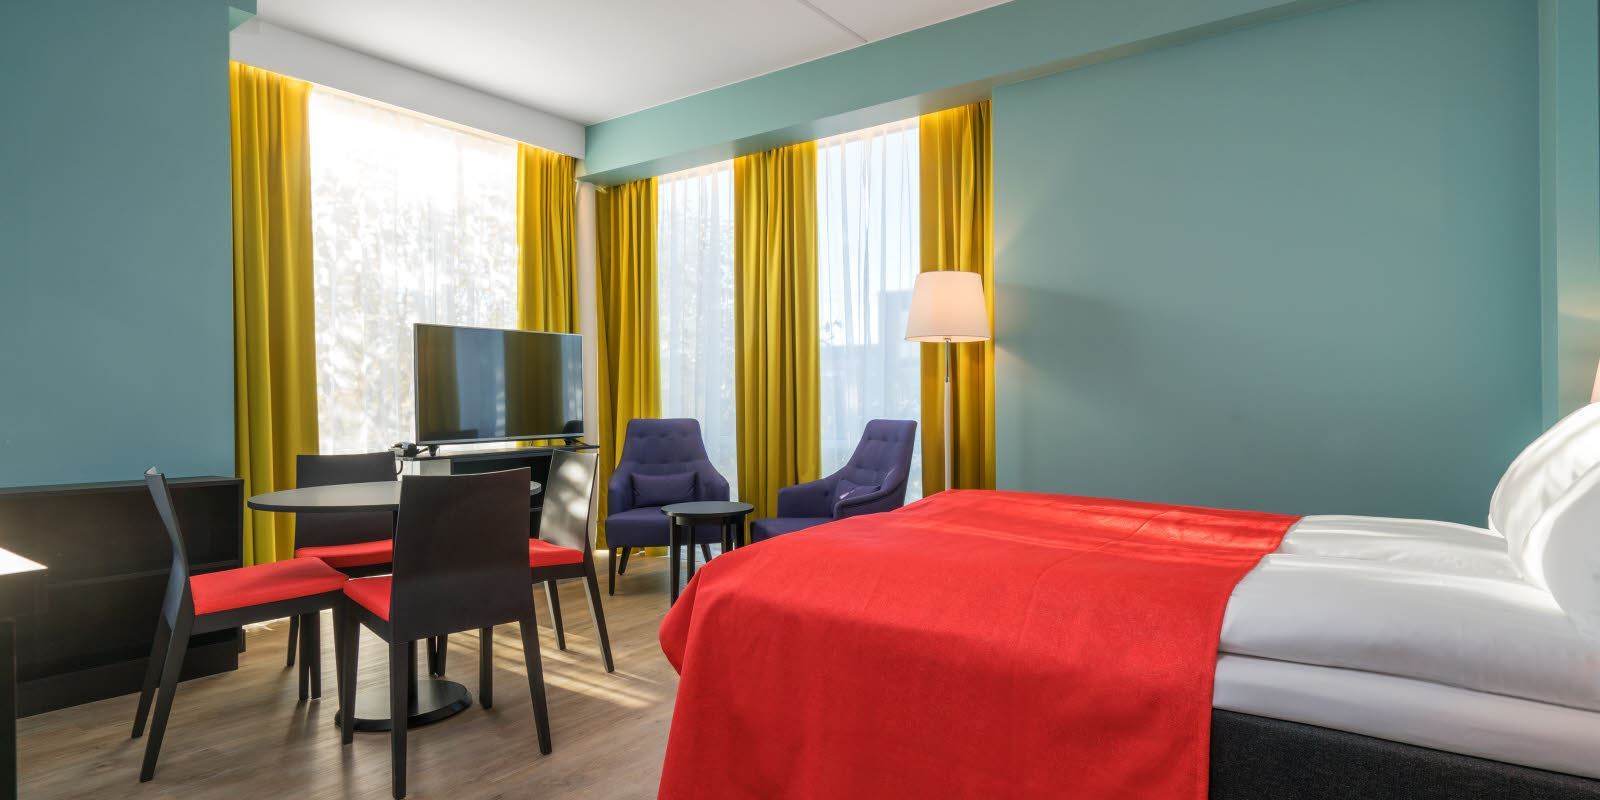 Double bed, smart TV and kitchen table in 2-room apartment at Thon Hotel Linne Apartments